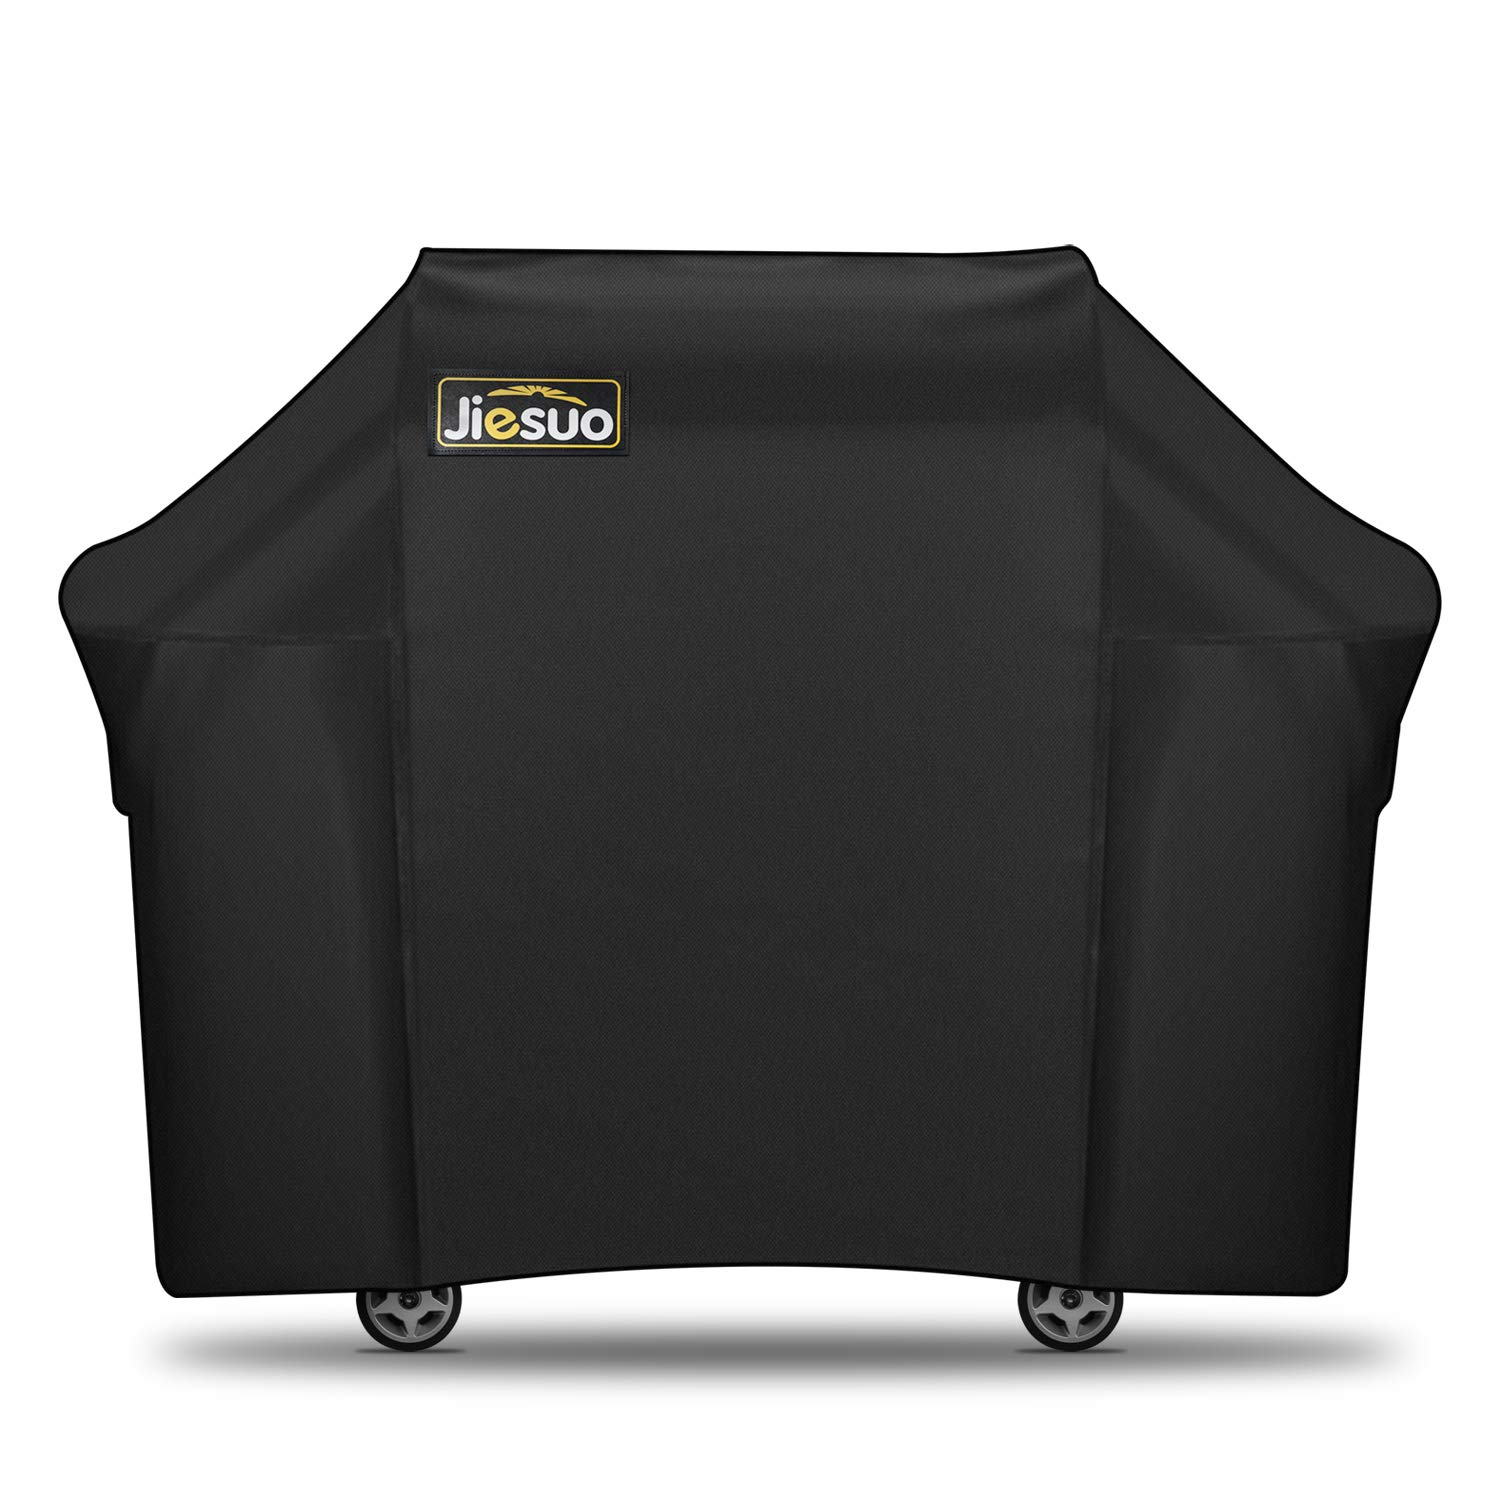 JIESUO BBQ Gas Grill Cover for Weber Genesis: Heavy Duty Waterproof 60 Inch 3 Burner Weather Resistant Ripstop UV Resistant Outdoor Barbeque Grill Covers by JIESUO